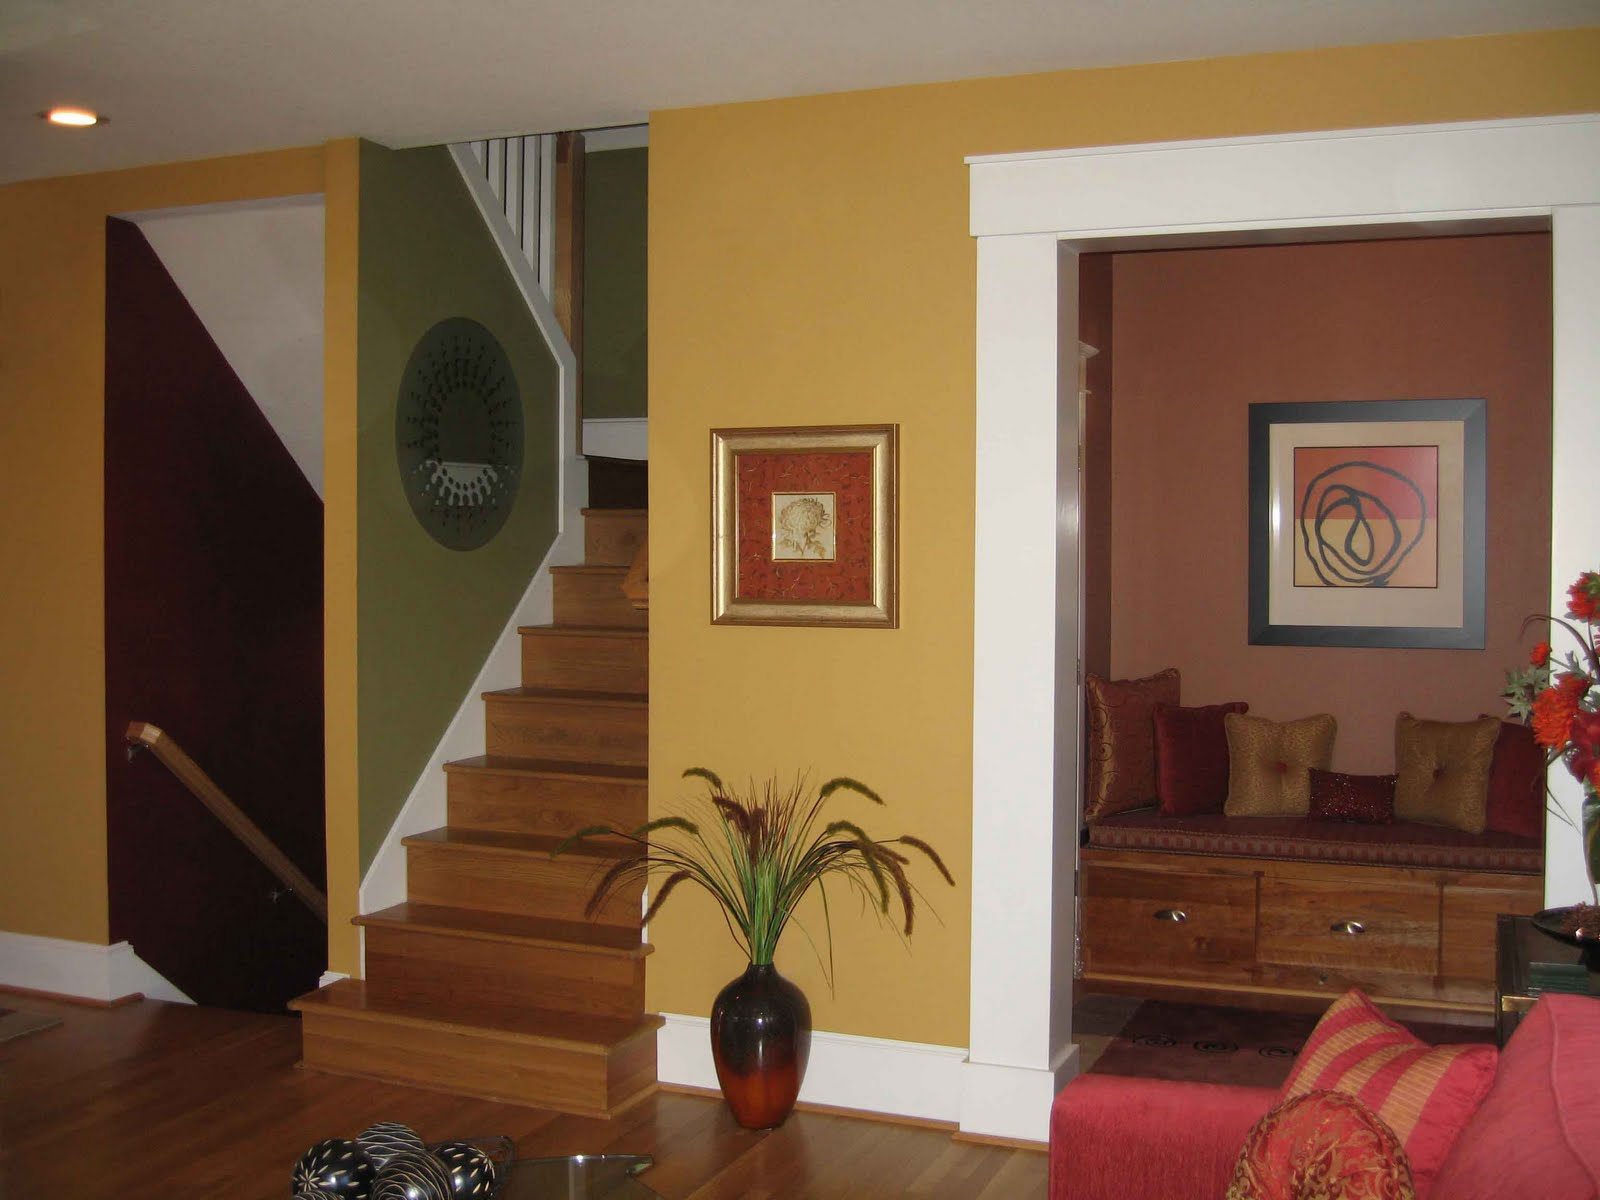 Interior spaces interior paint color specialist in for How to paint my house interior